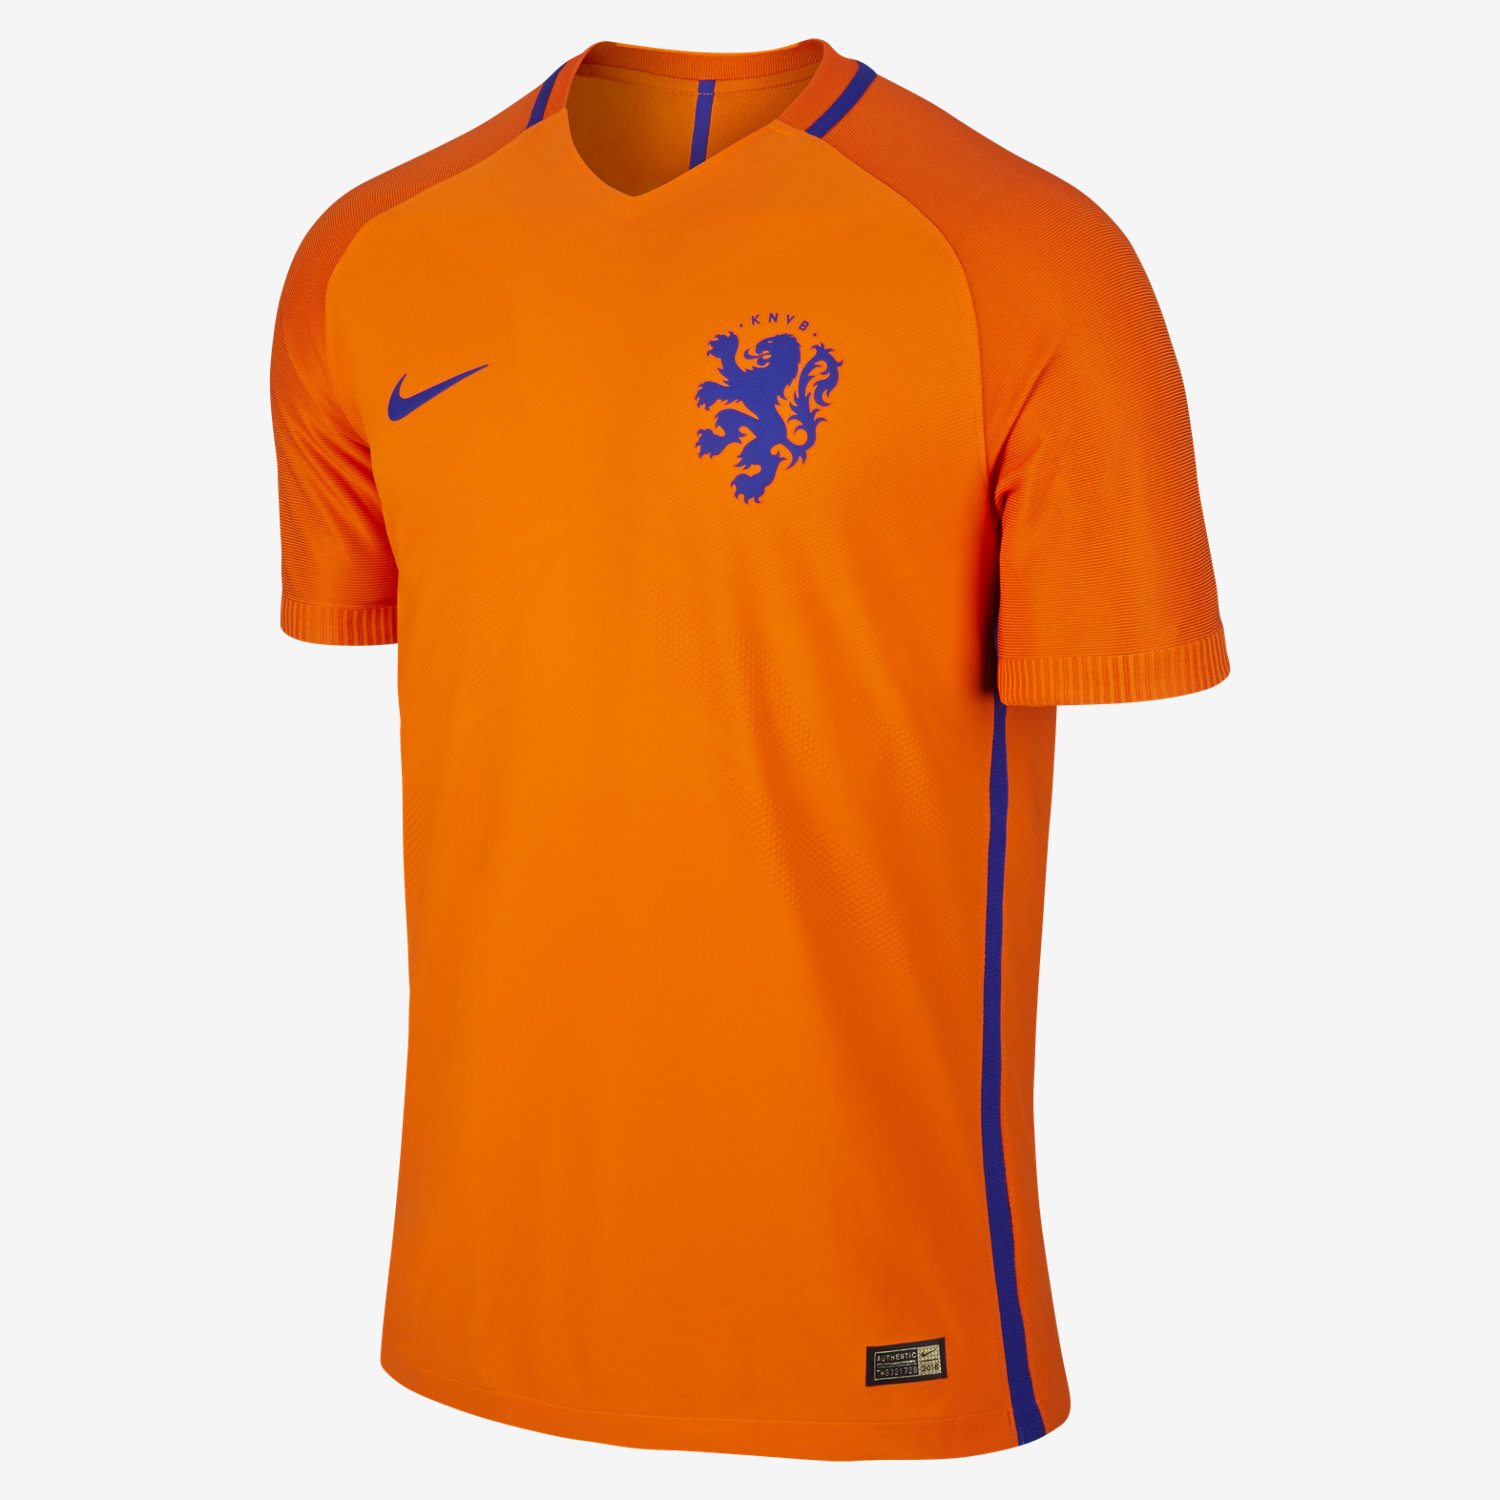 huge selection of 05327 4bc58 Nike Netherlands Auth Home Jersey 2016/17 - Orange